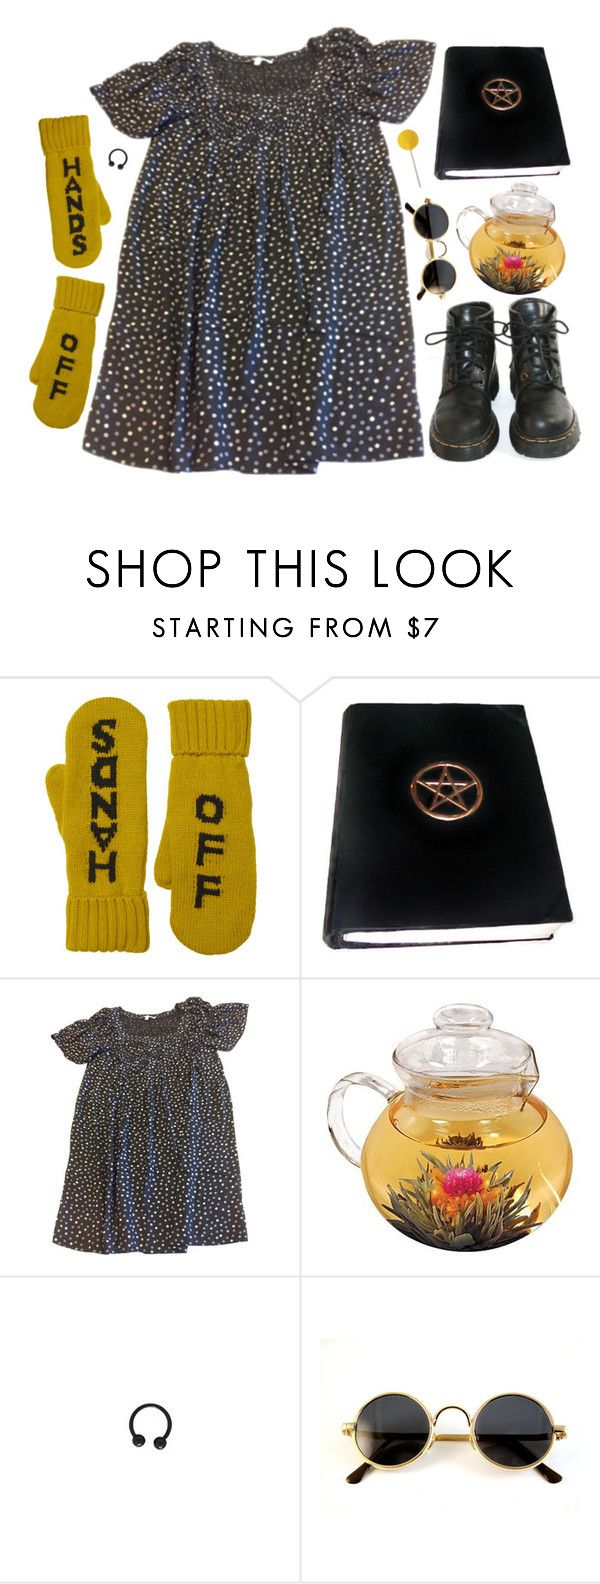 """hands off"" by grimess ❤ liked on Polyvore featuring Monki, Maje, Dr. Martens, women's clothing, women's fashion, women, female, woman, misses and juniors"